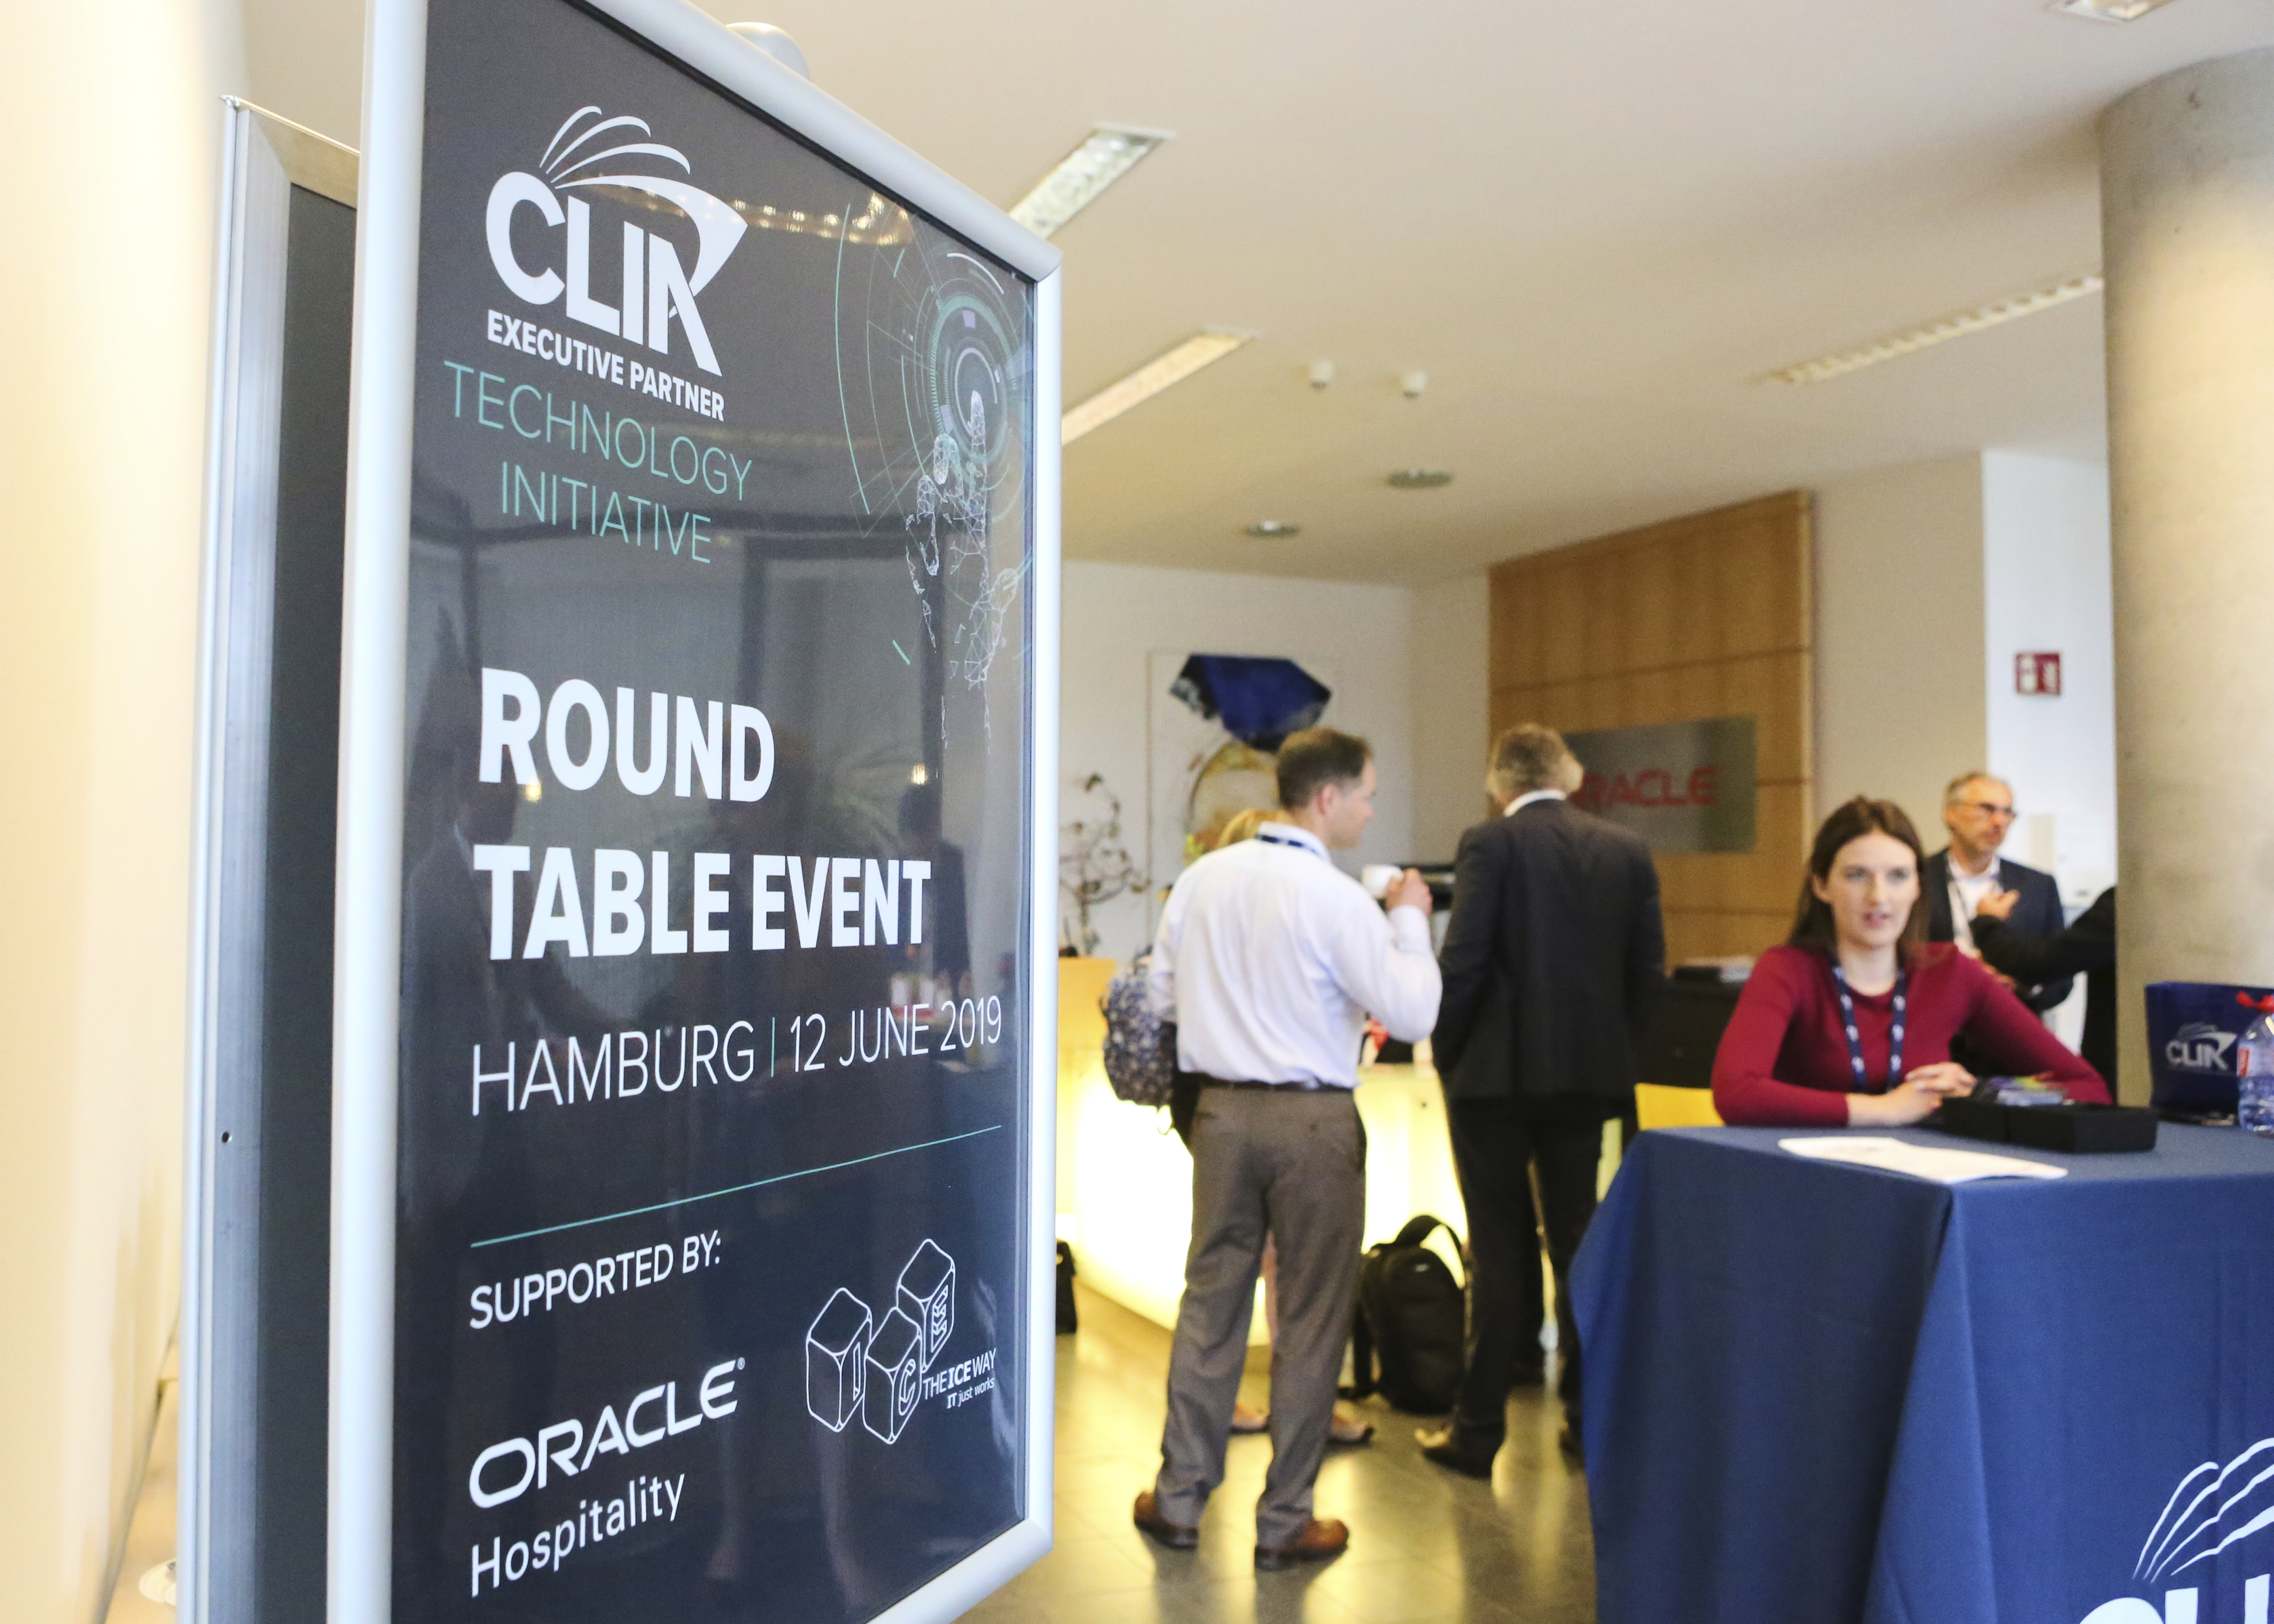 CLIA Executive Partner Technology Initiative Round Table Event